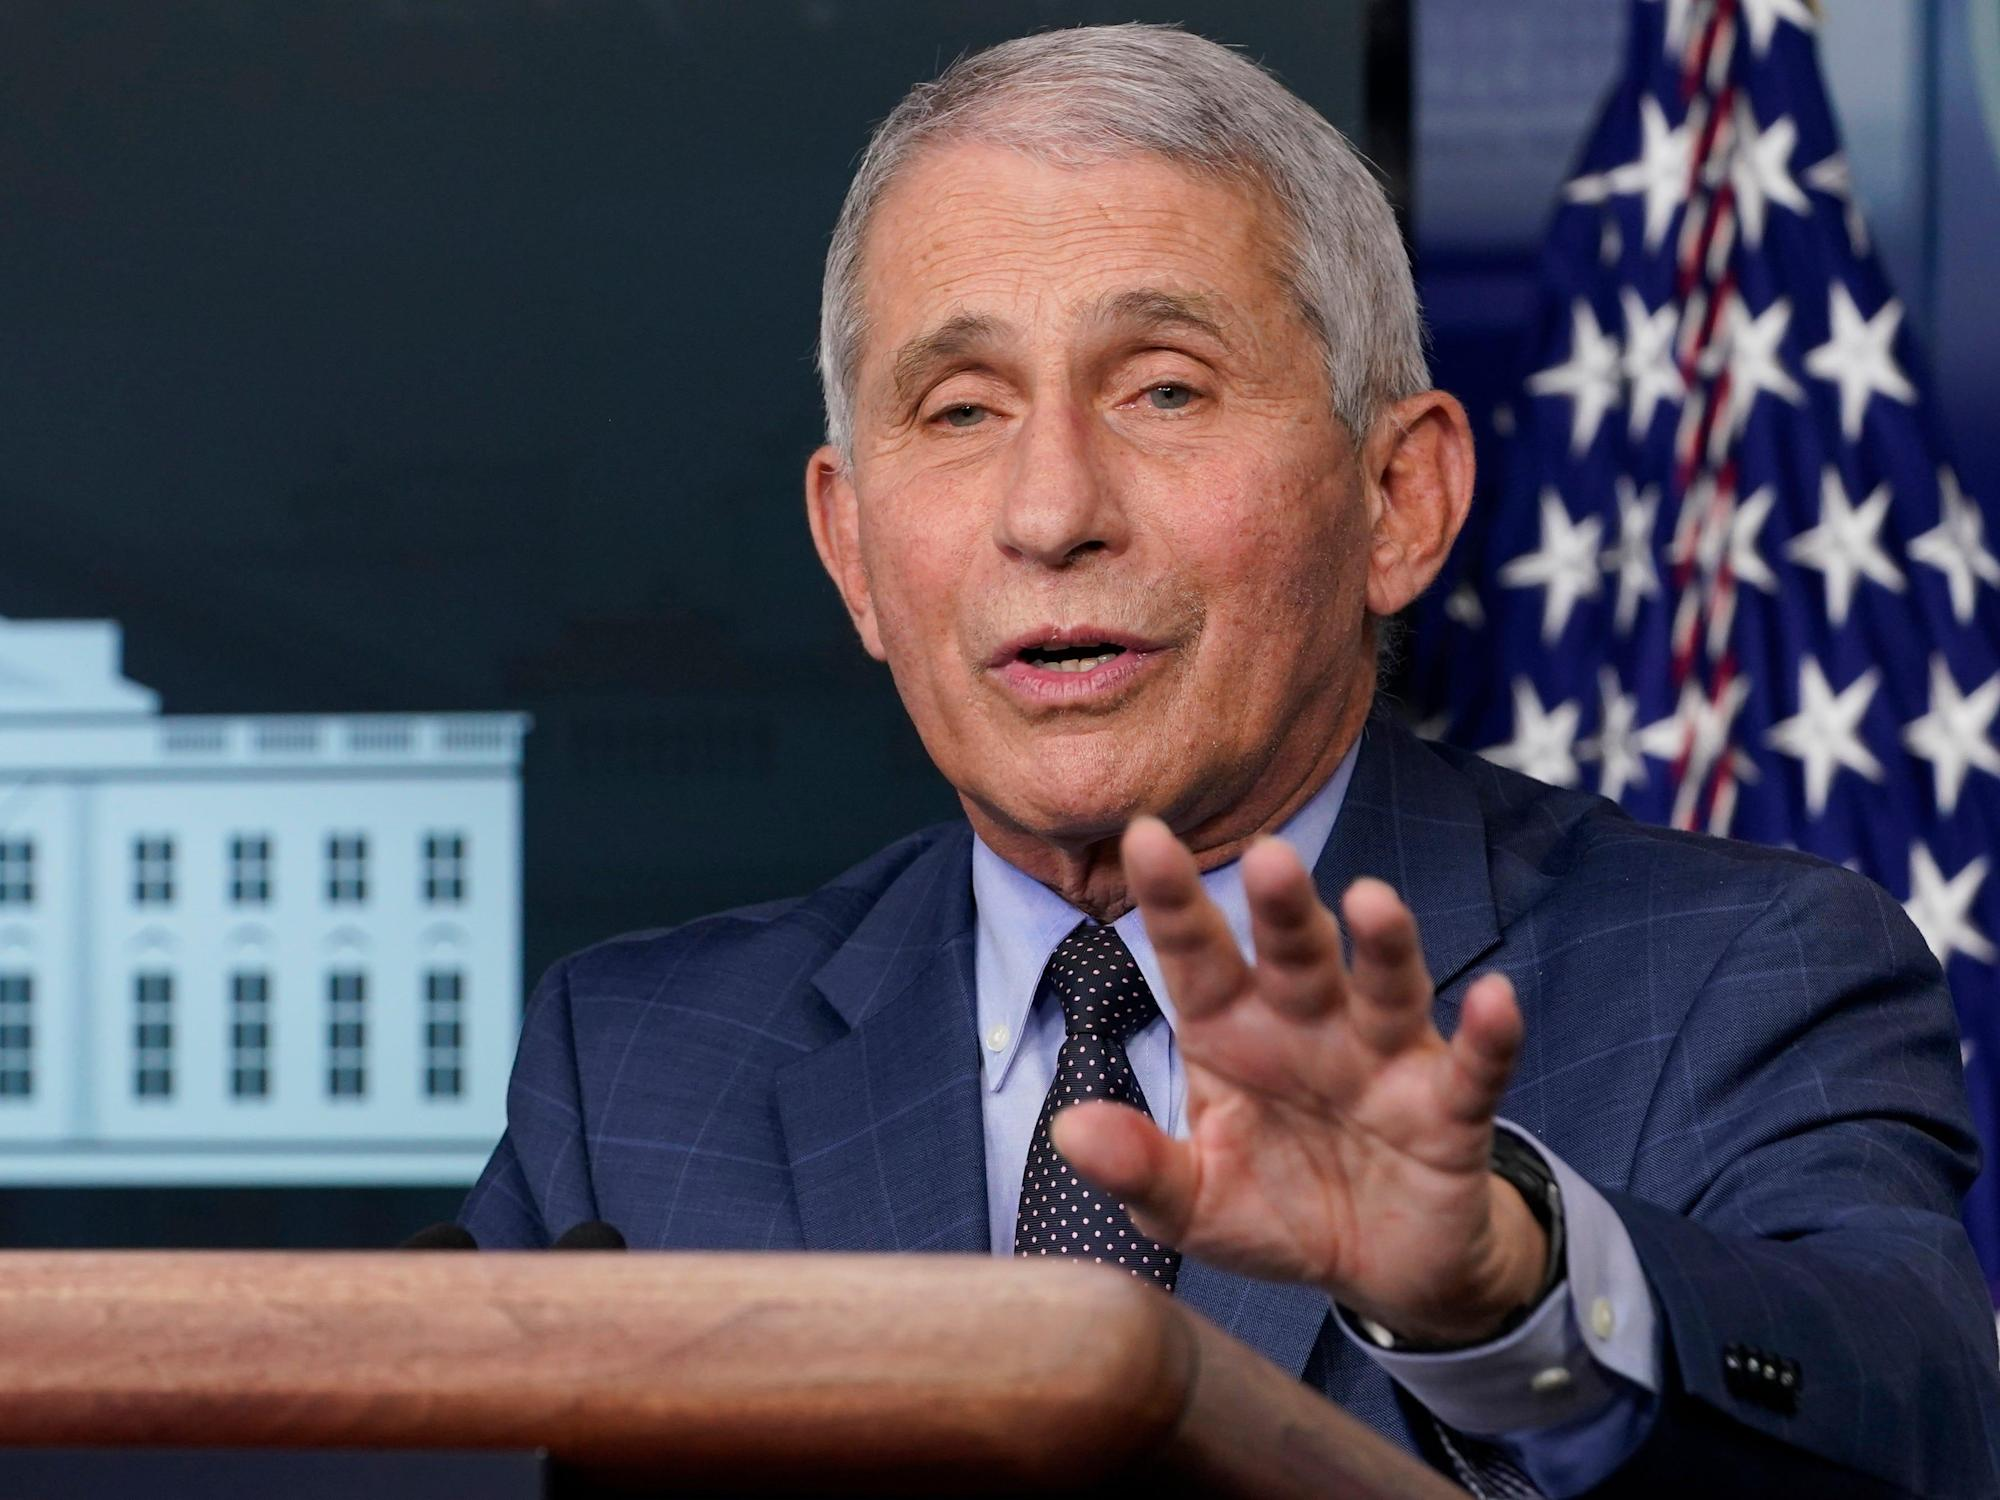 Fauci brushes off GOP criticism and says attacks on him are 'attacks on science' he can debunk 'immediately'